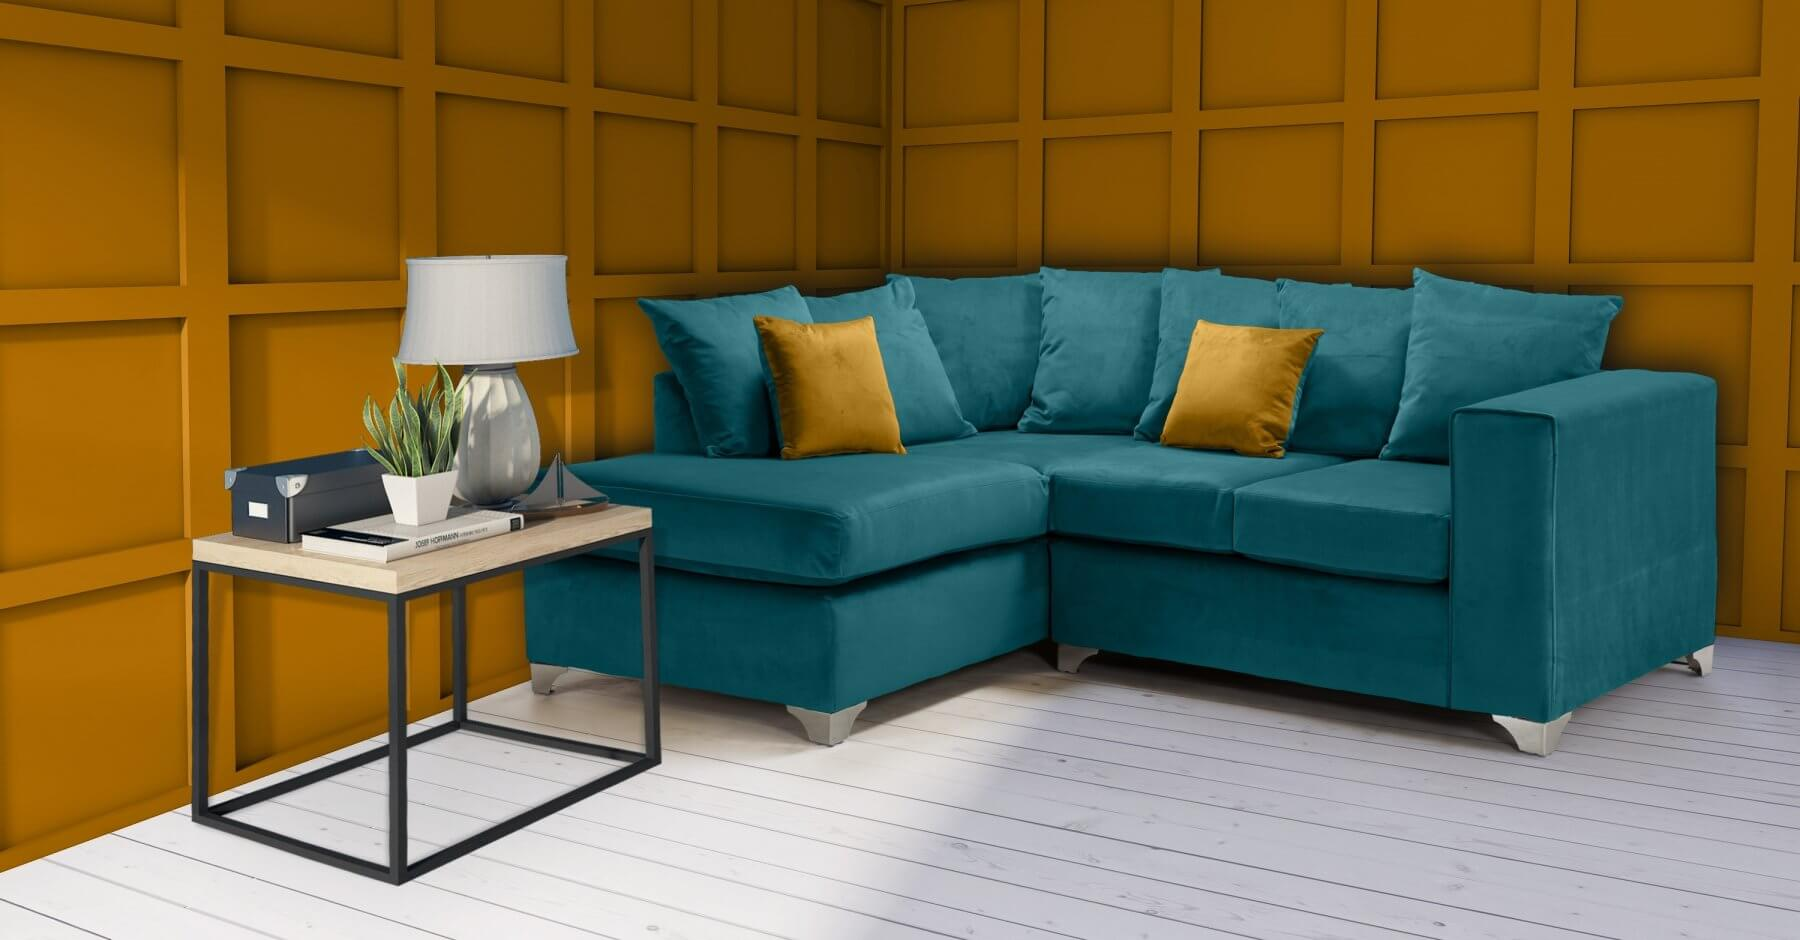 Velvet Teal / Turquoise 1c2 Enfield Corner Sofa With Scatter Cushions